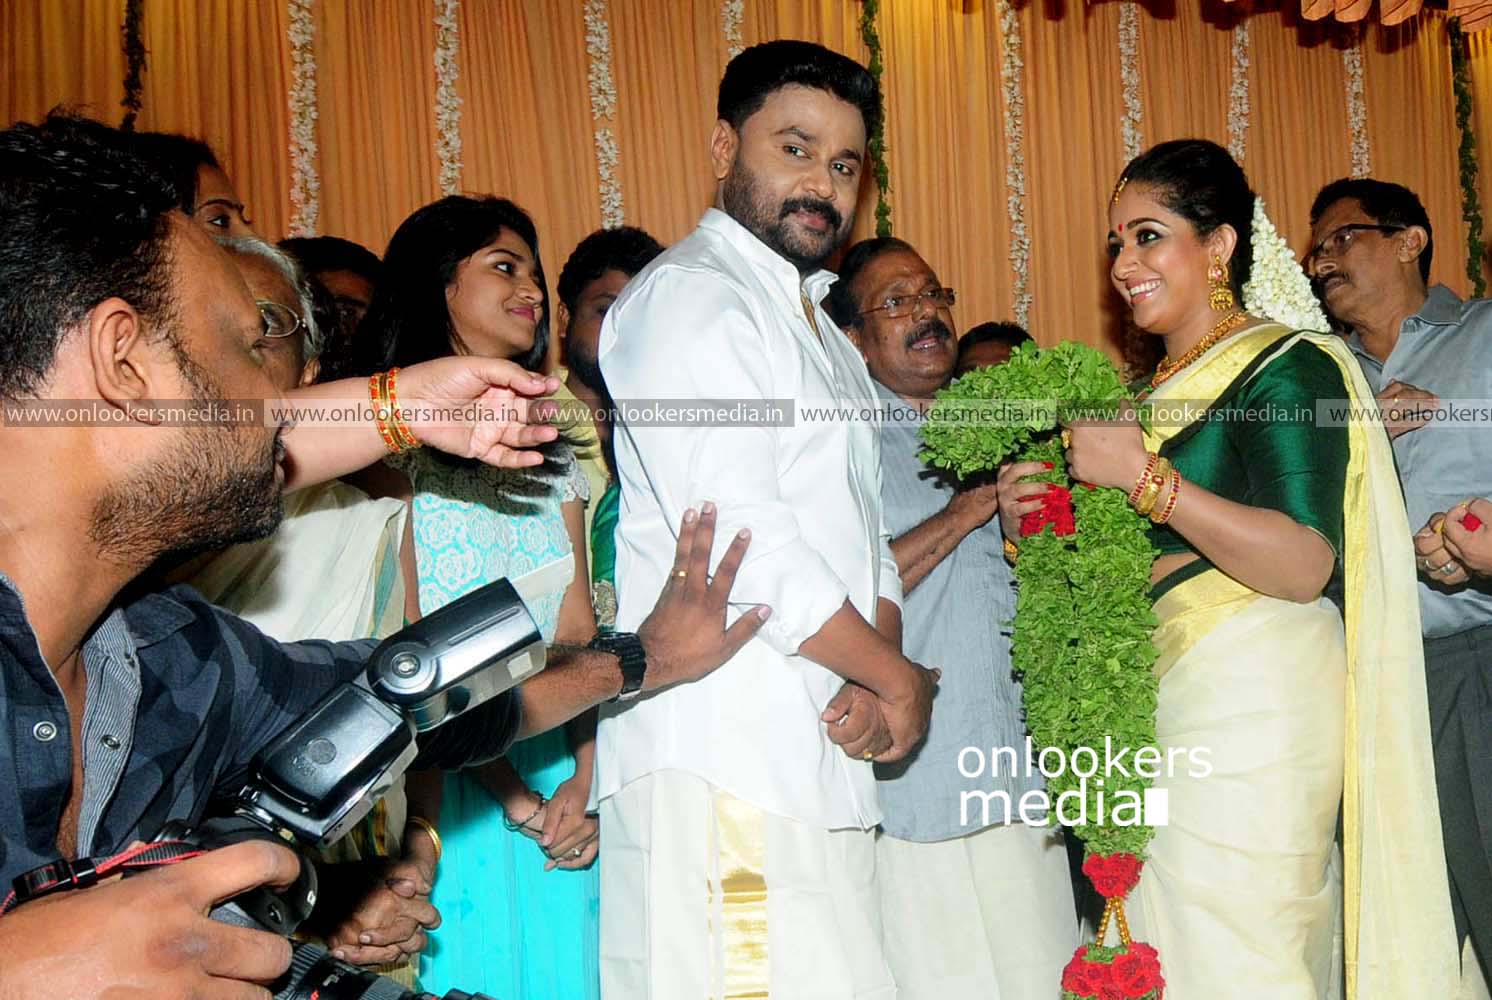 http://onlookersmedia.in/wp-content/uploads/2016/11/Dileep-Kavya-Madhavan-Wedding-Stills-Photos-13.jpg